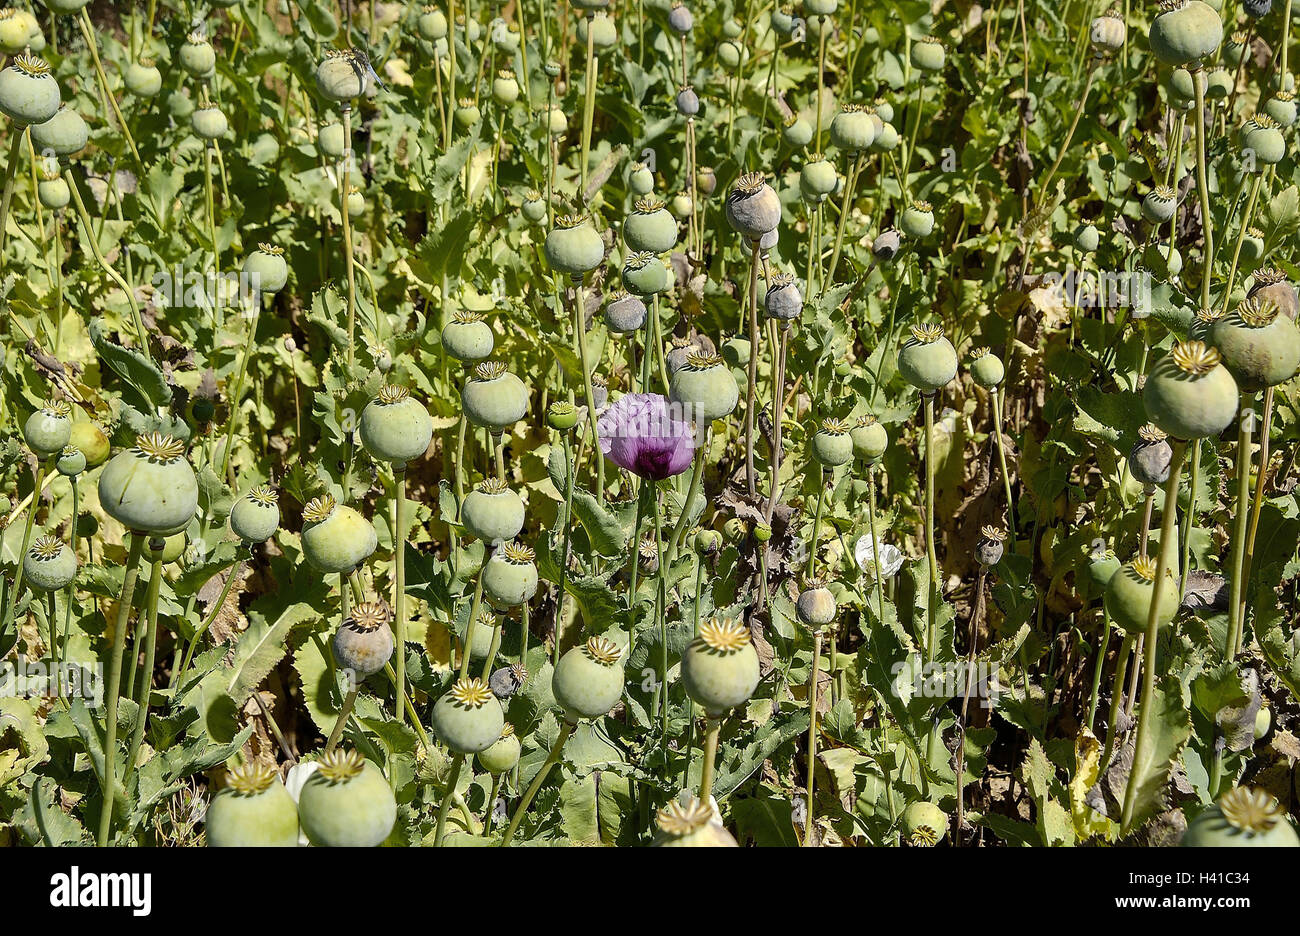 Turkey afyon meadow poppy seed papaver detail capsules south turkey afyon meadow poppy seed papaver detail capsules south east europe poppy field cultivation poppies plants fadeds poppy seed capsules mightylinksfo